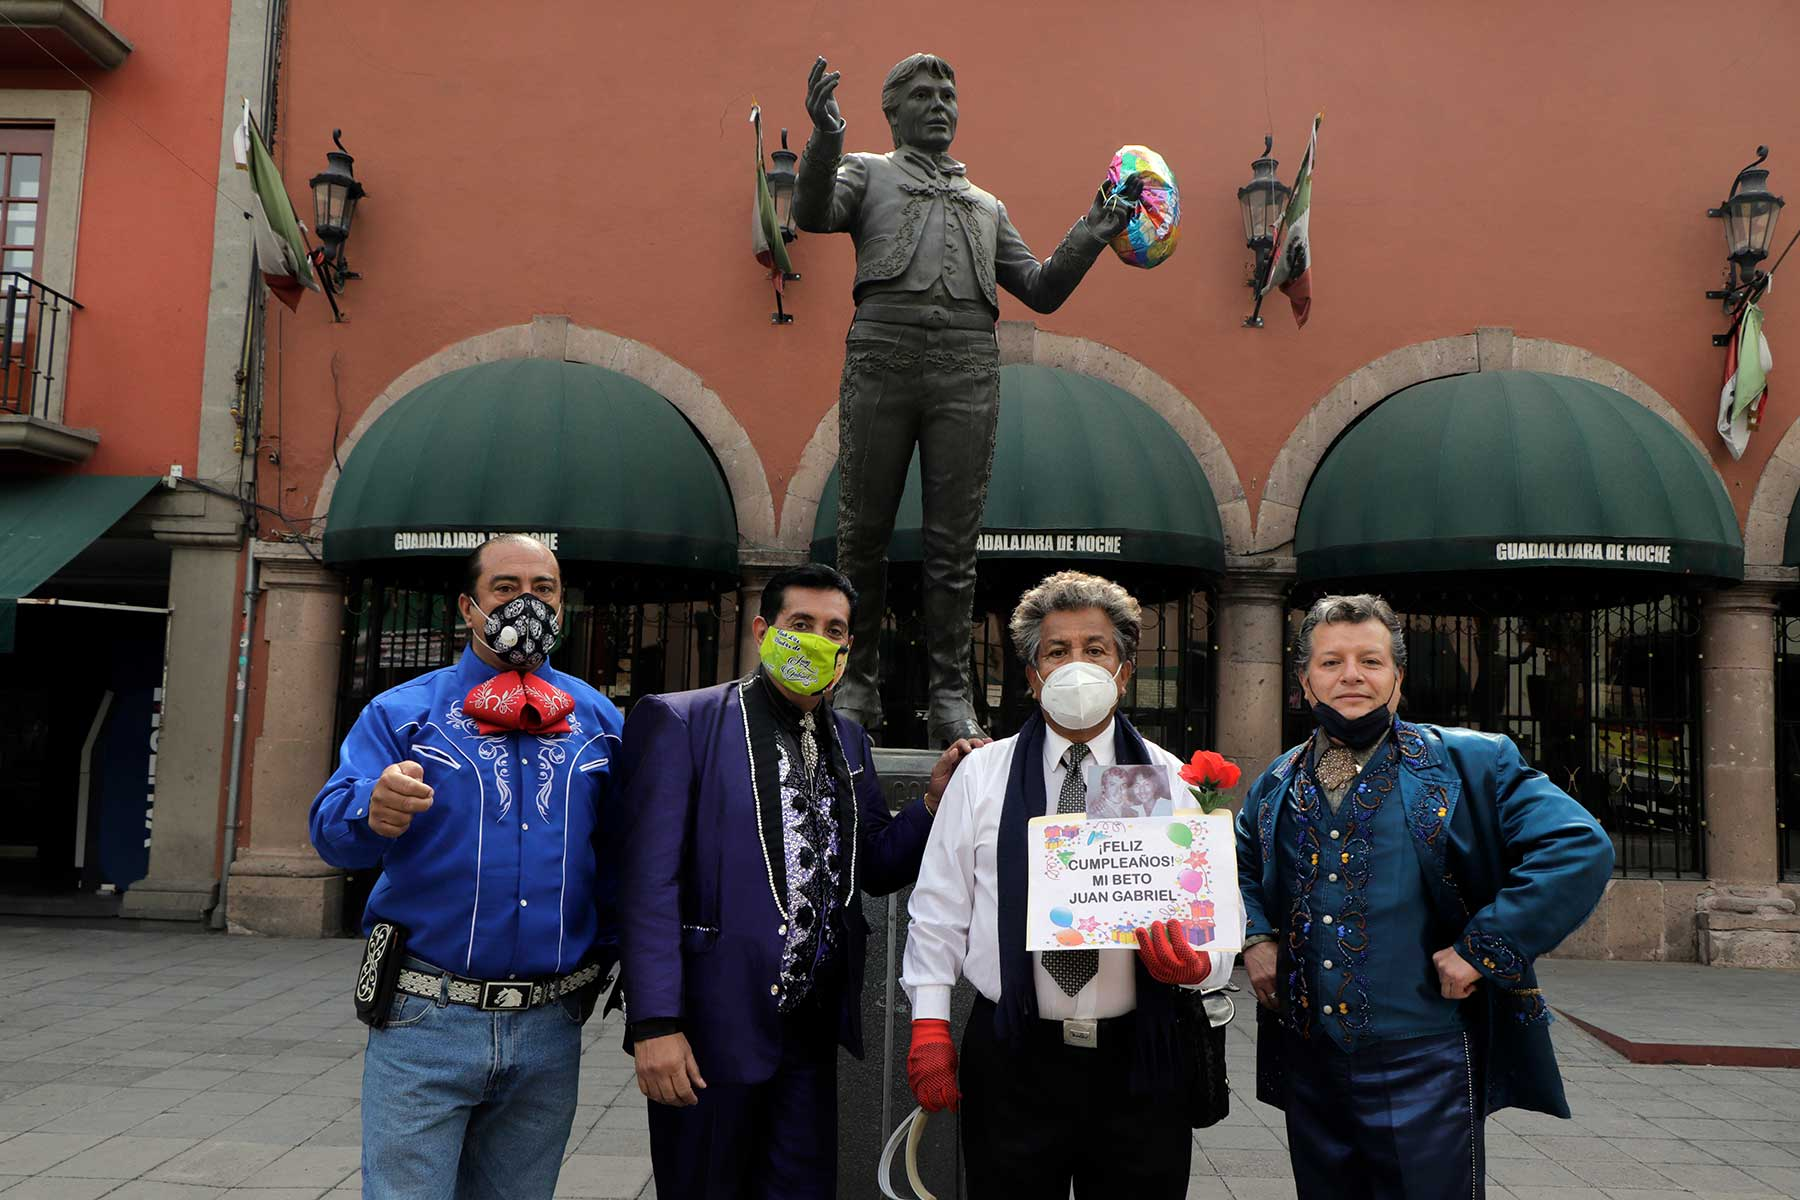 Followers of the singer, composer, songwriter and performer Alberto Aguilera Valadez, better known as Juan Gabriel, an icon of Mexican popular culture and music, pose in front of a statue in his honor at Plaza Garibaldi in Mexico City to pay tribute to him on the occasion of his birthday. However, this was not possible due to the epidemiological red traffic light for COVID-19 in the capital.  On Sunday August 28, 2016, Juan Gabriel, passed away in Santa Monica, California, United States. (Photo by Gerardo Vieyra/NurPhoto via Getty Images)